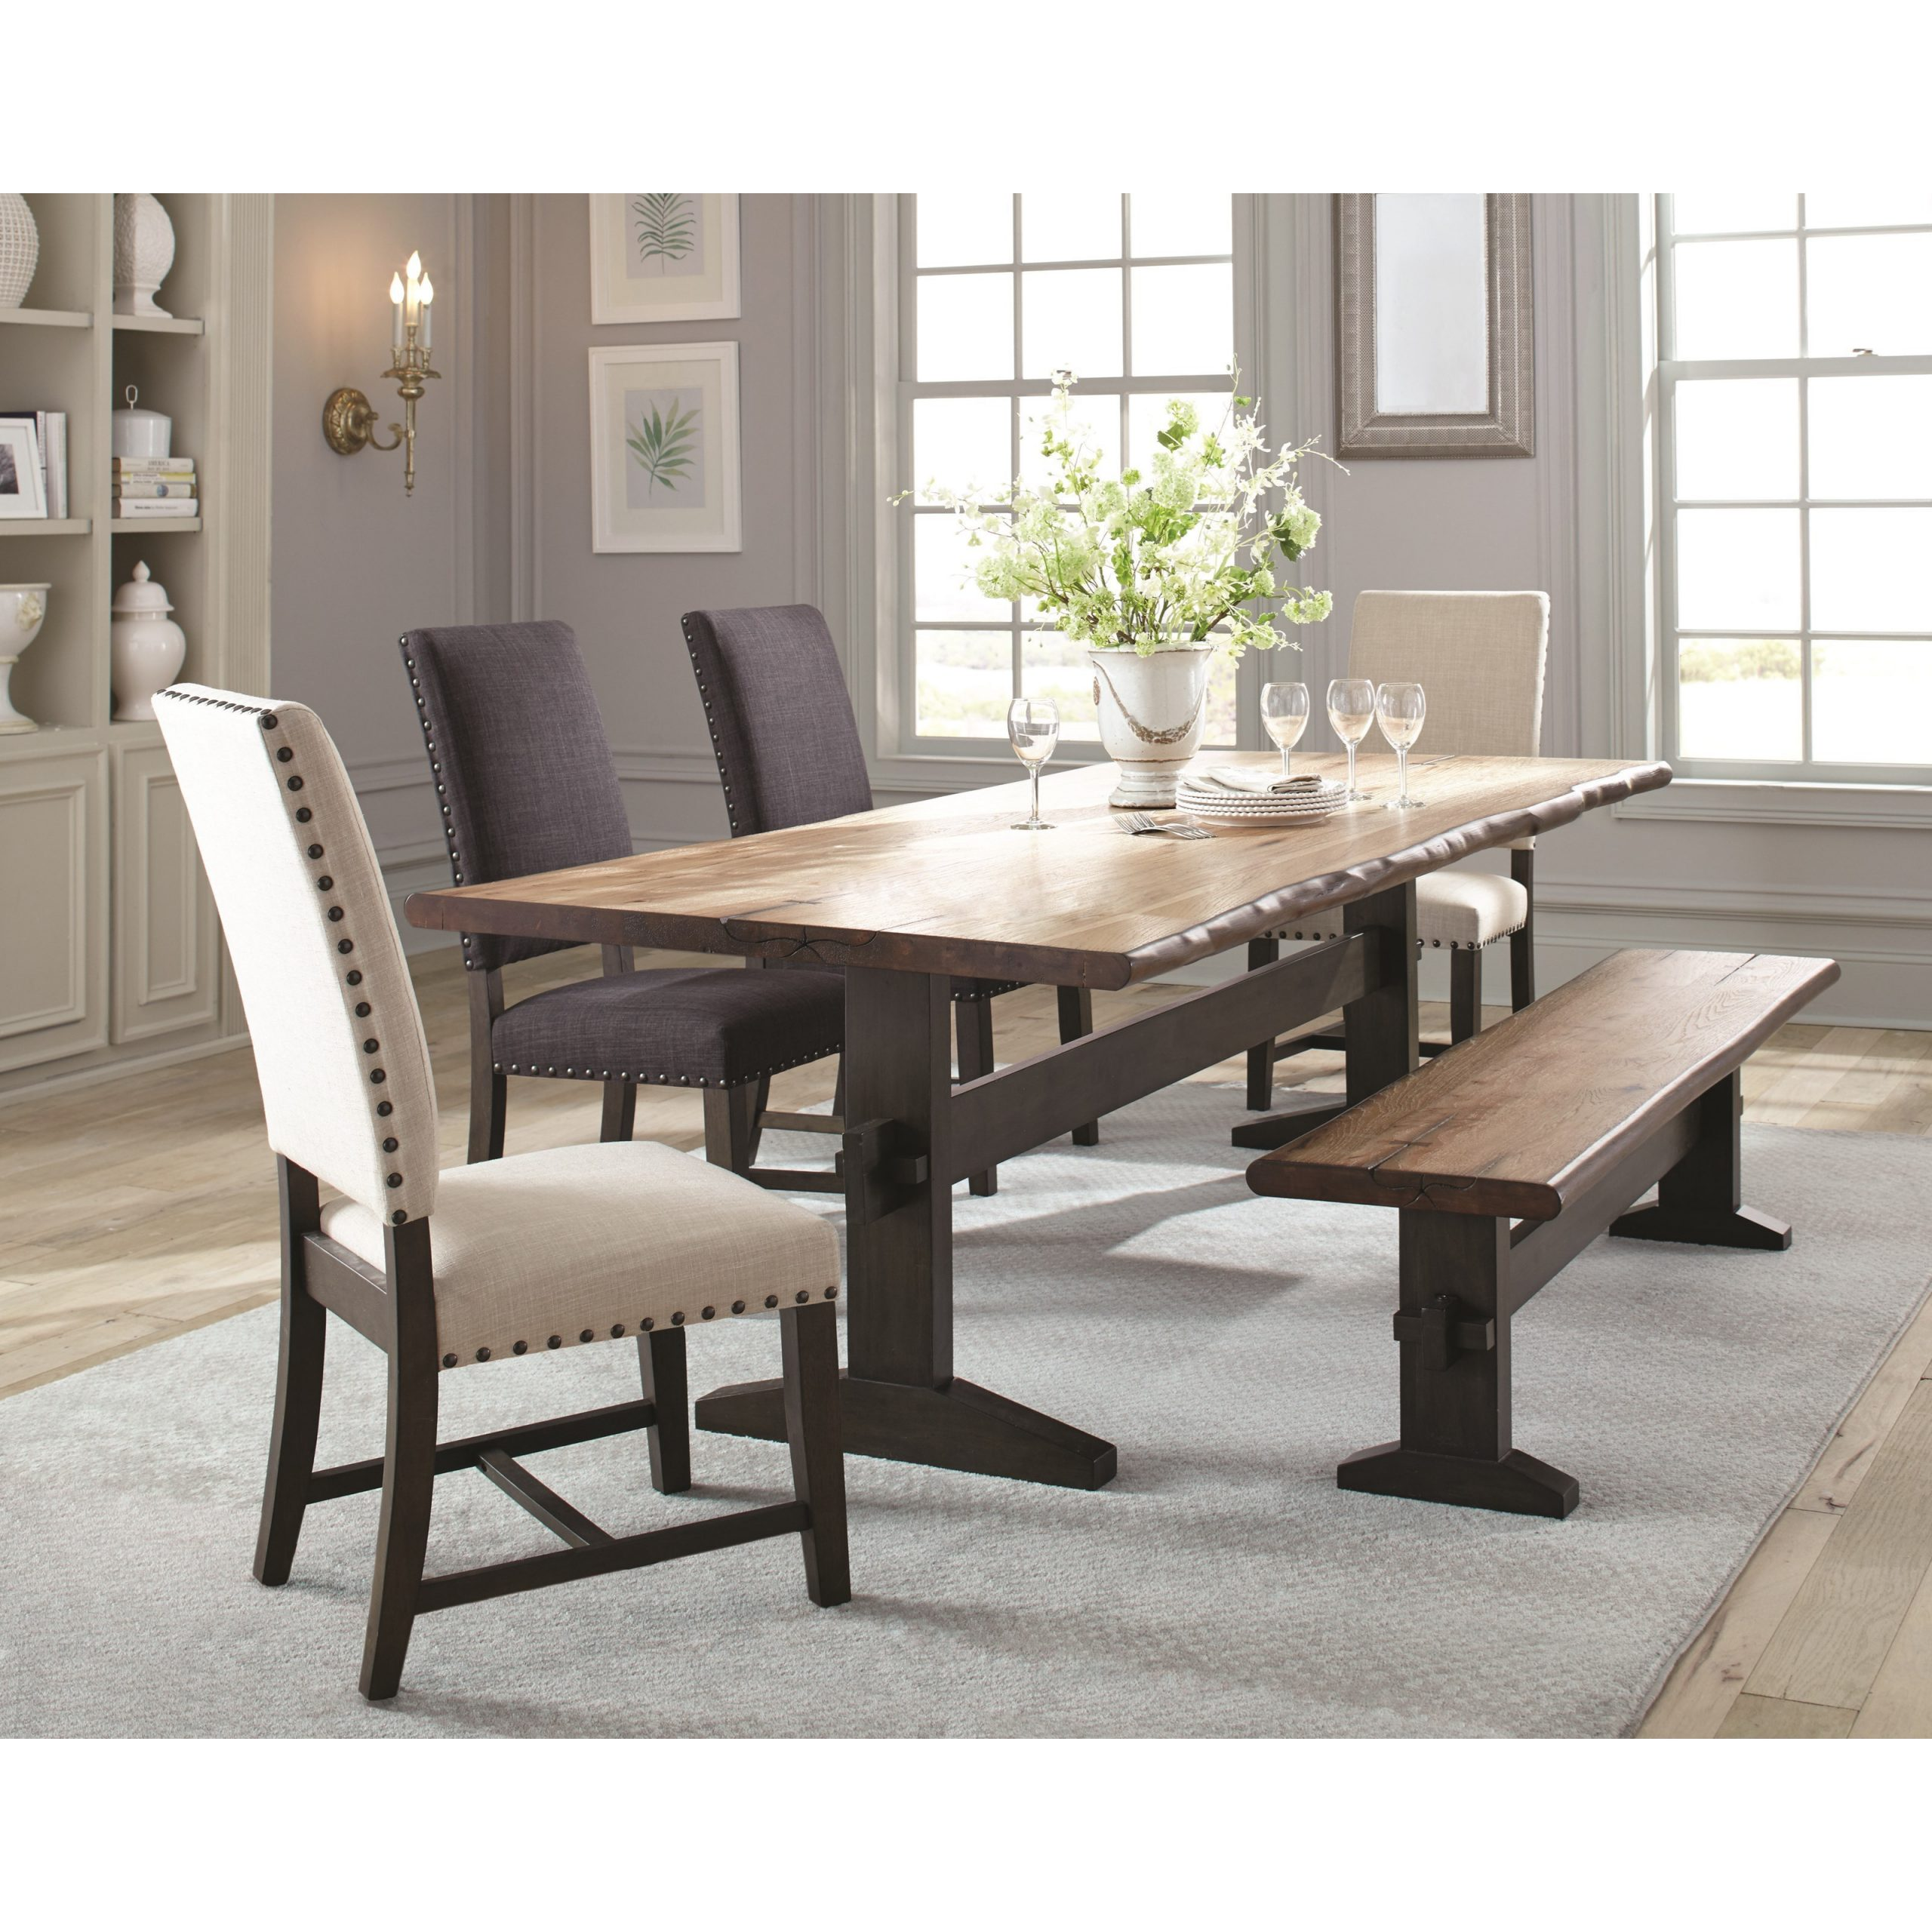 Burnham Two Tone Live Edge Dining Table With Trestle Base In Best And Newest Baring 35'' Dining Tables (View 12 of 15)